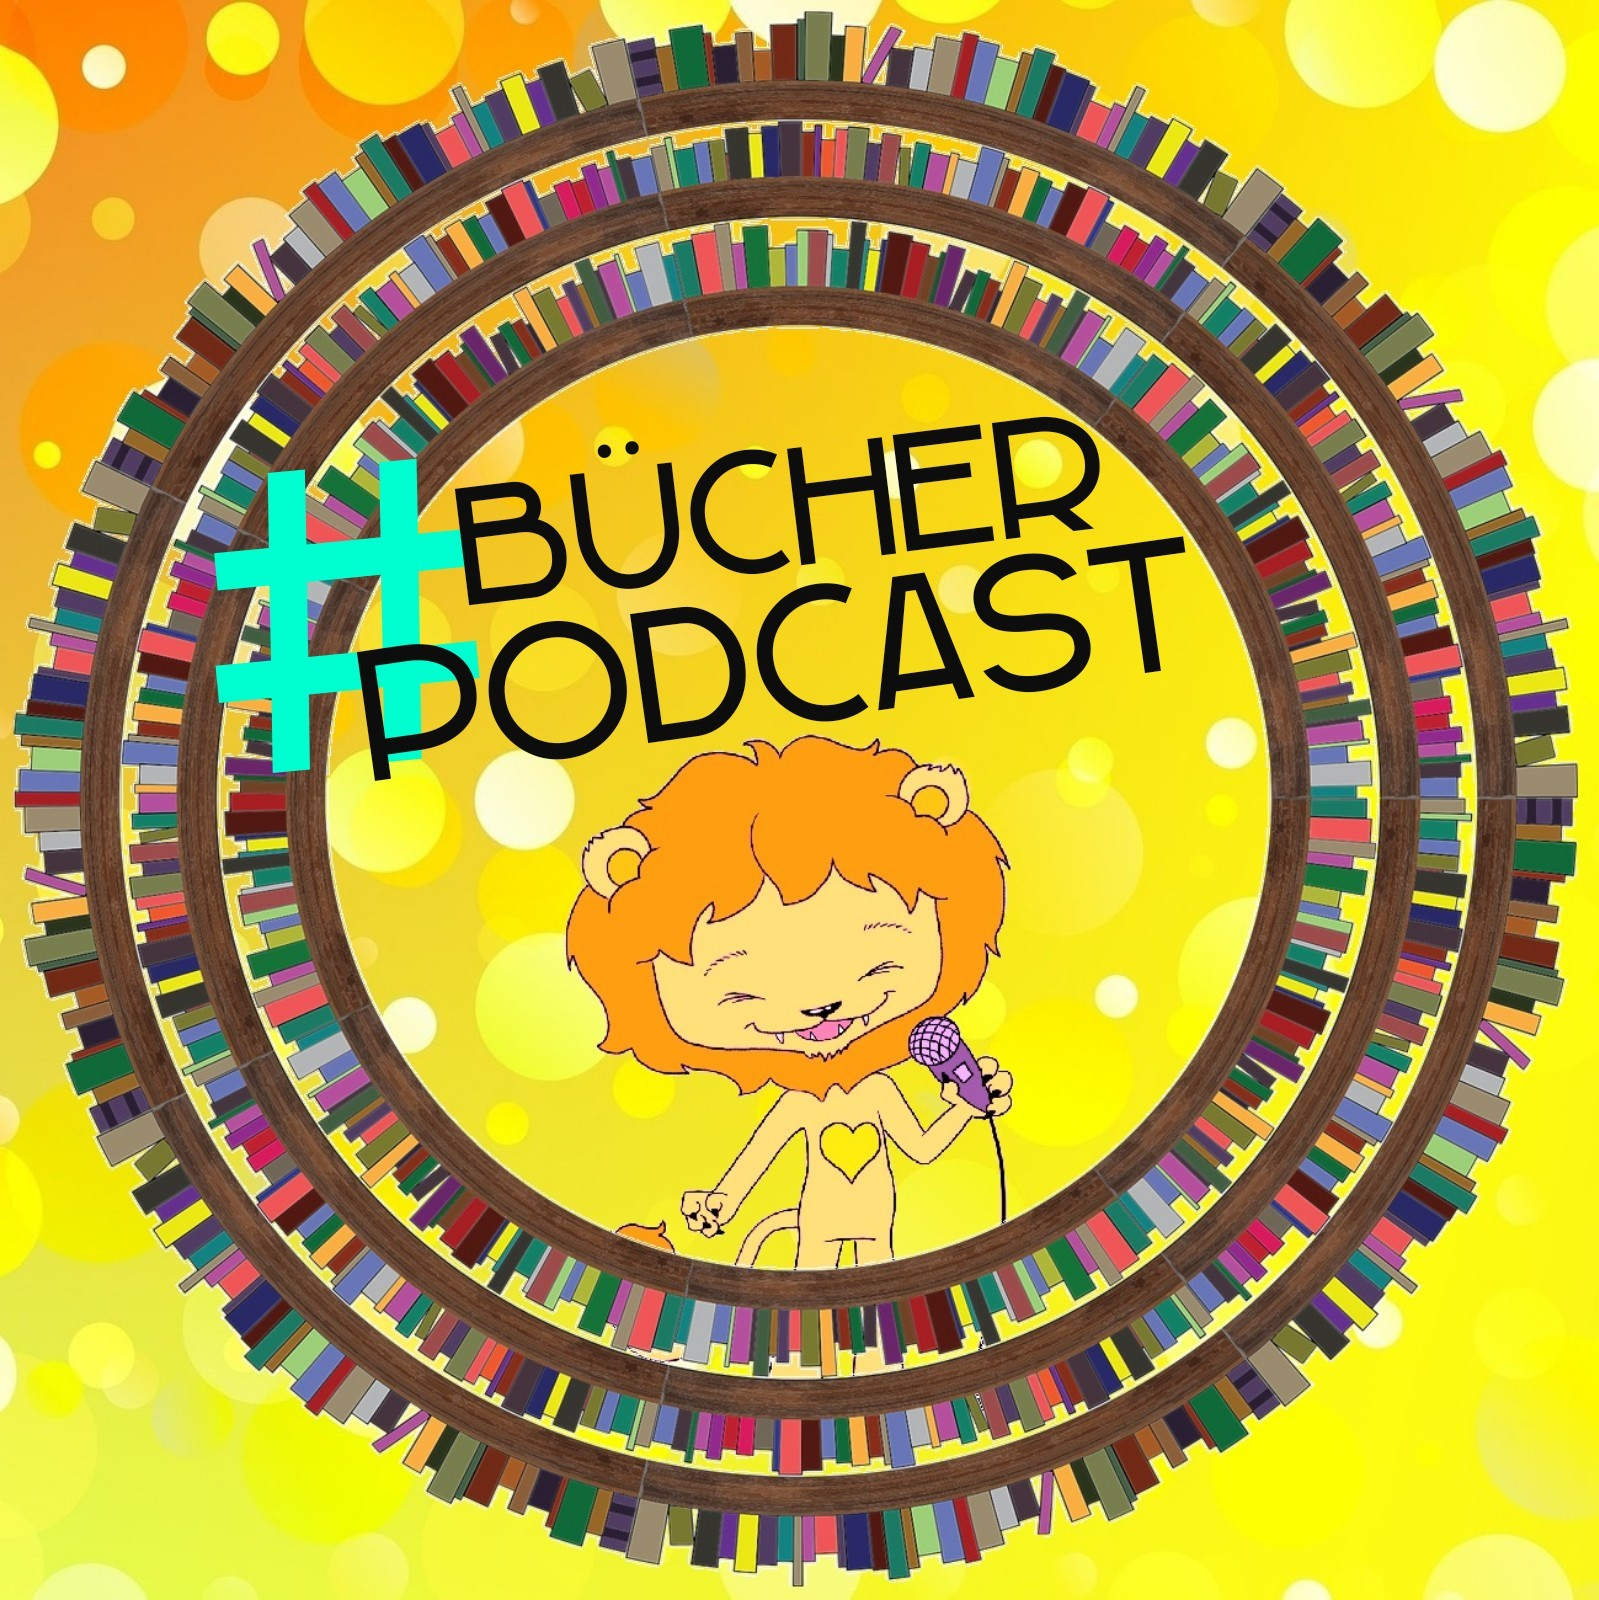 #BücherPodcast